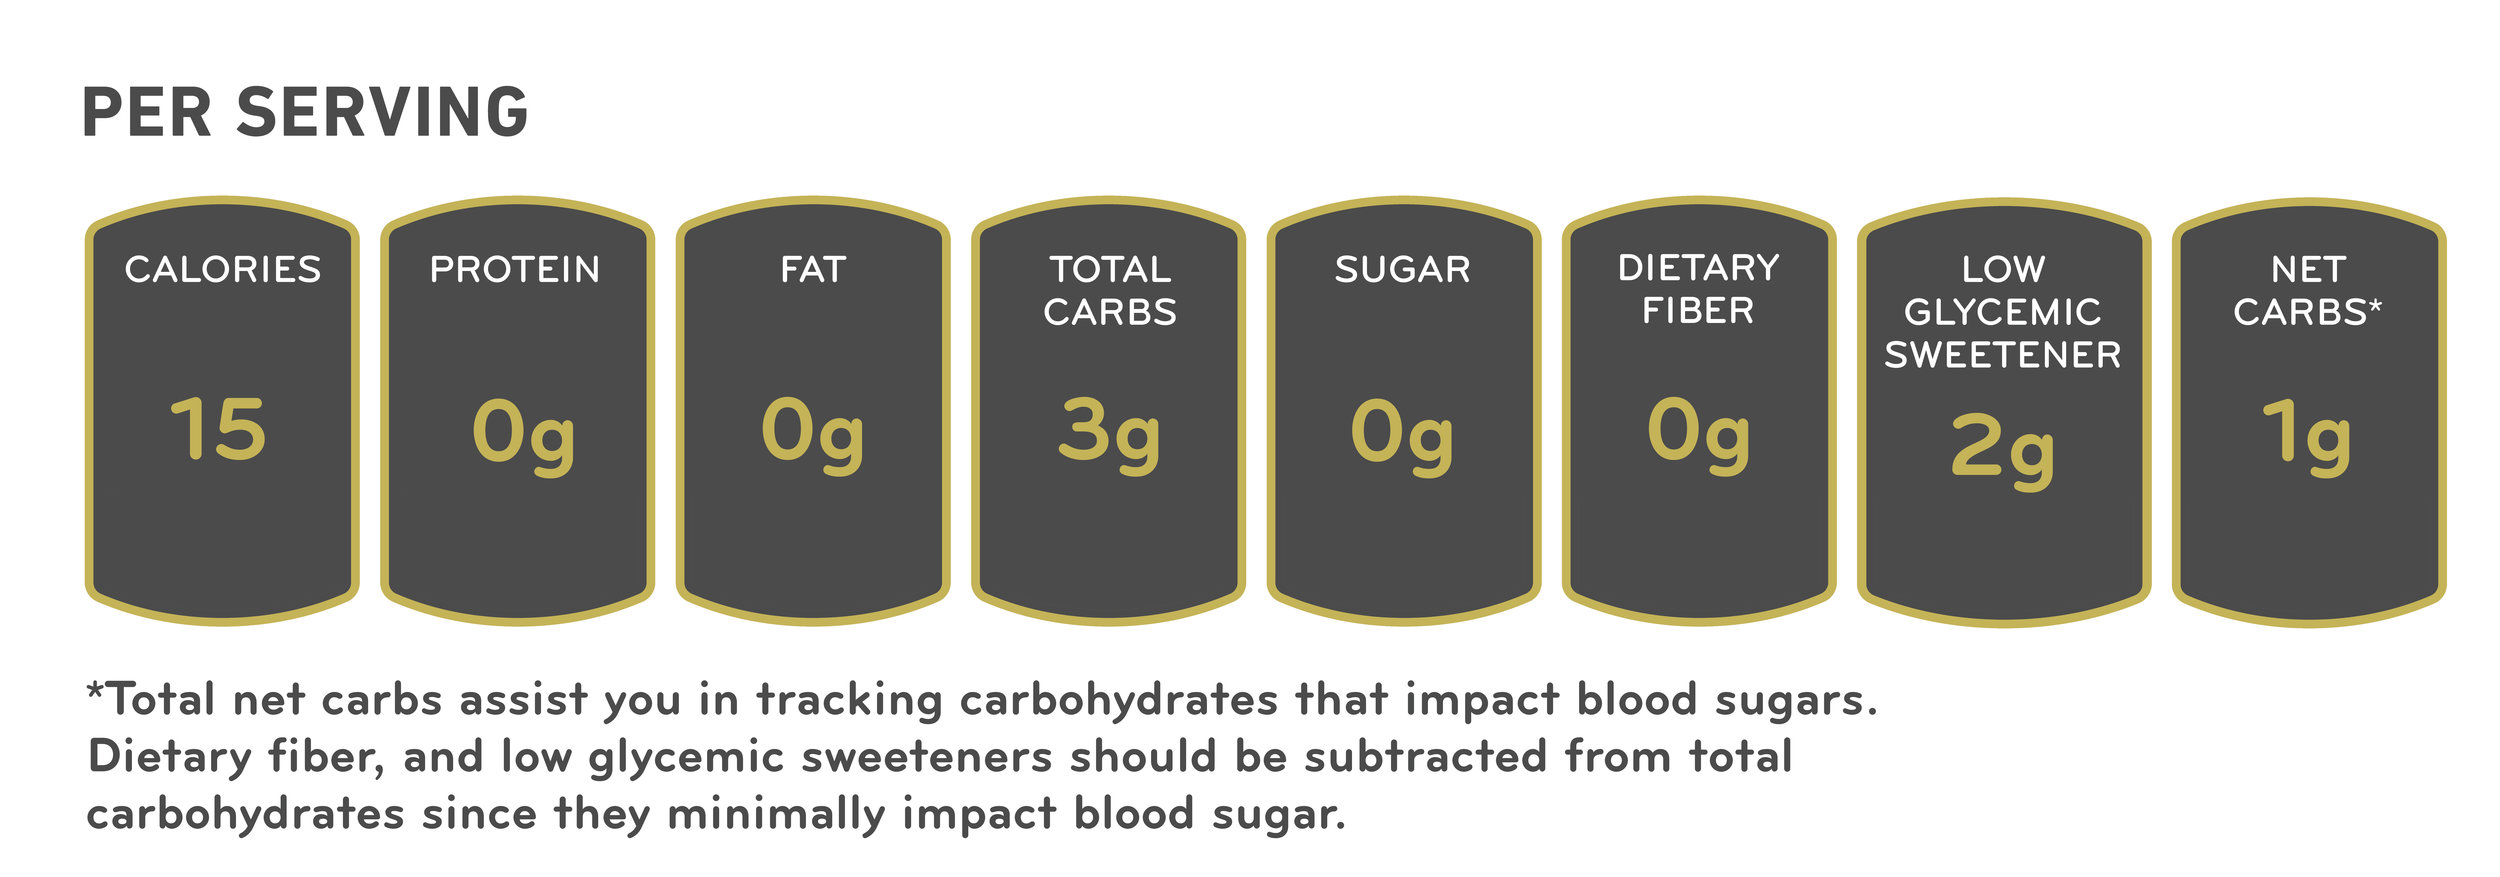 LOW CARB KETO TEXAS BBQ SAUCE NUTRITION FACTS.jpg